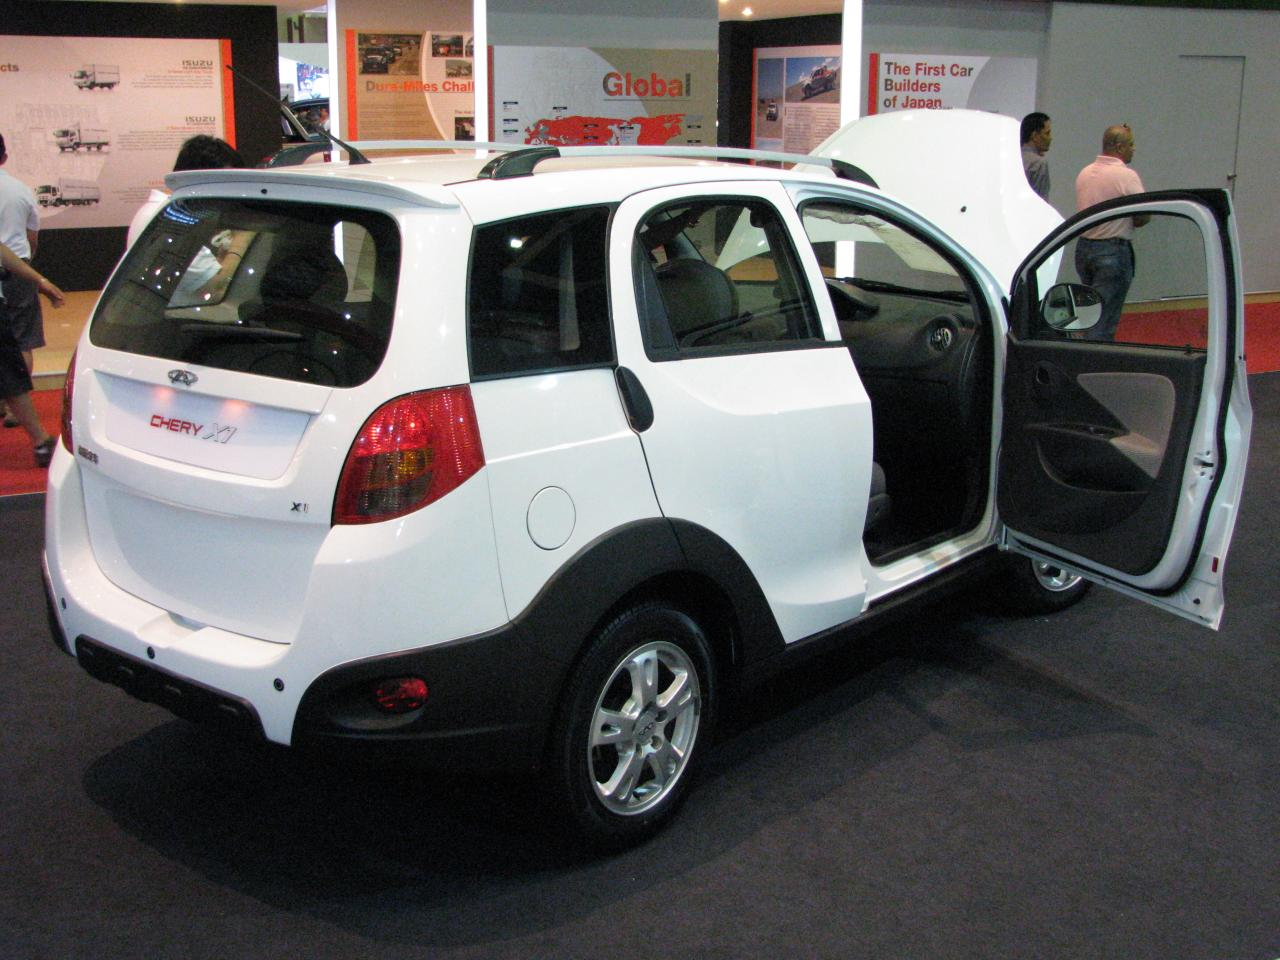 http://upload.wikimedia.org/wikipedia/commons/9/9a/Chery_X1_-_KL_International_Motor_Show_2010.jpg